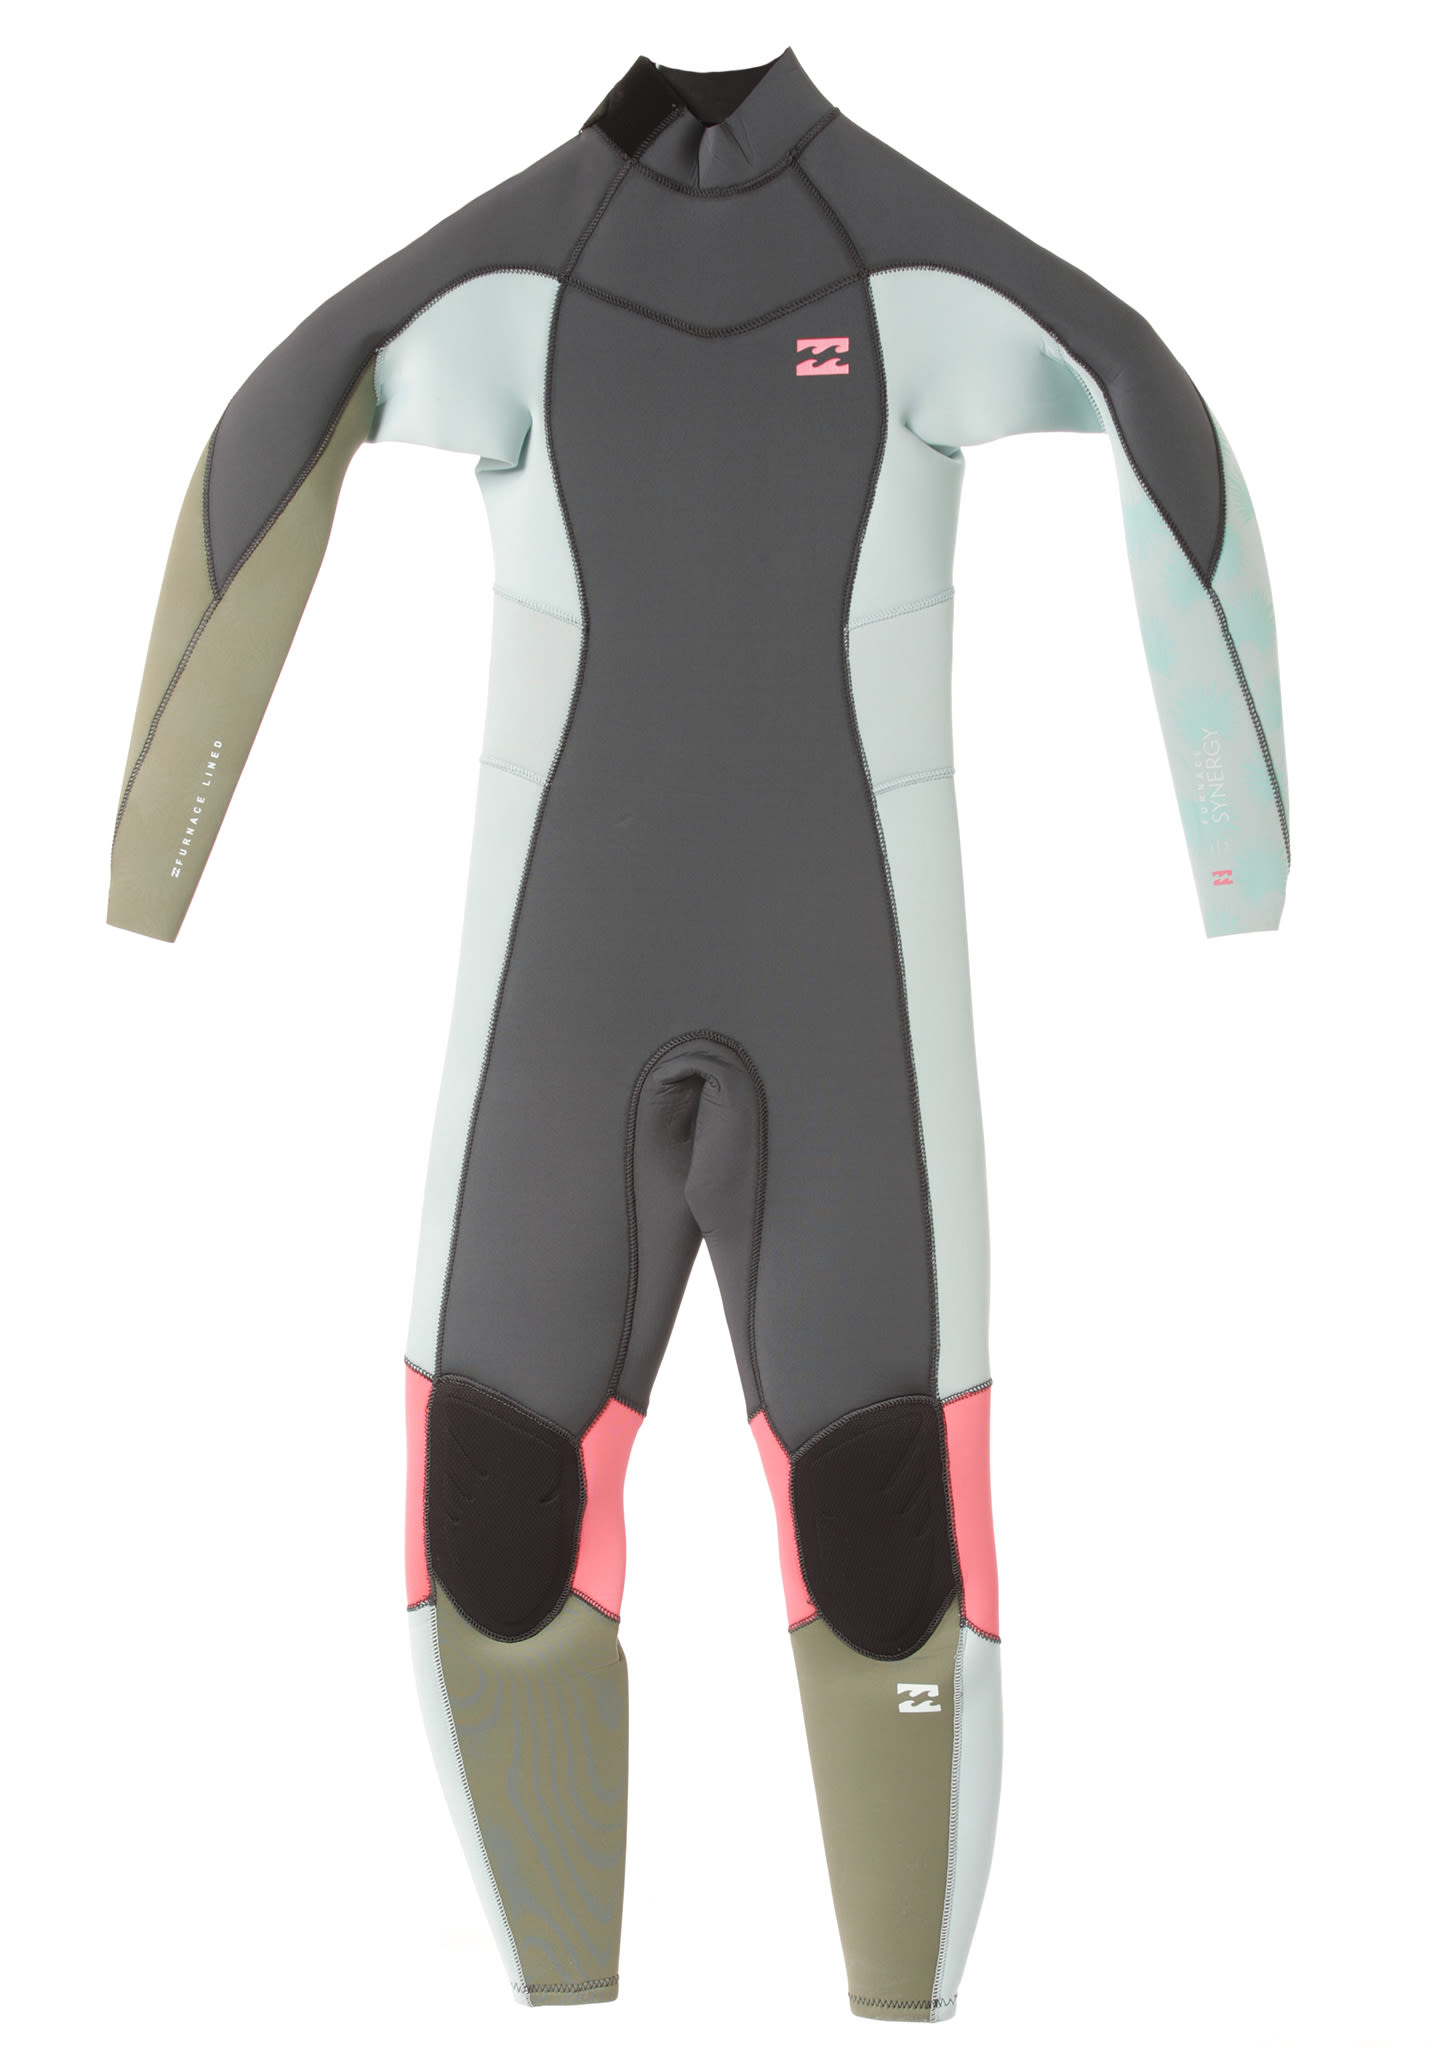 a4dd476b15 BILLABONG Furnace Synergy 3 2Mm Back Zip - Wetsuit for Kids Girls -  Multicolor - Planet Sports